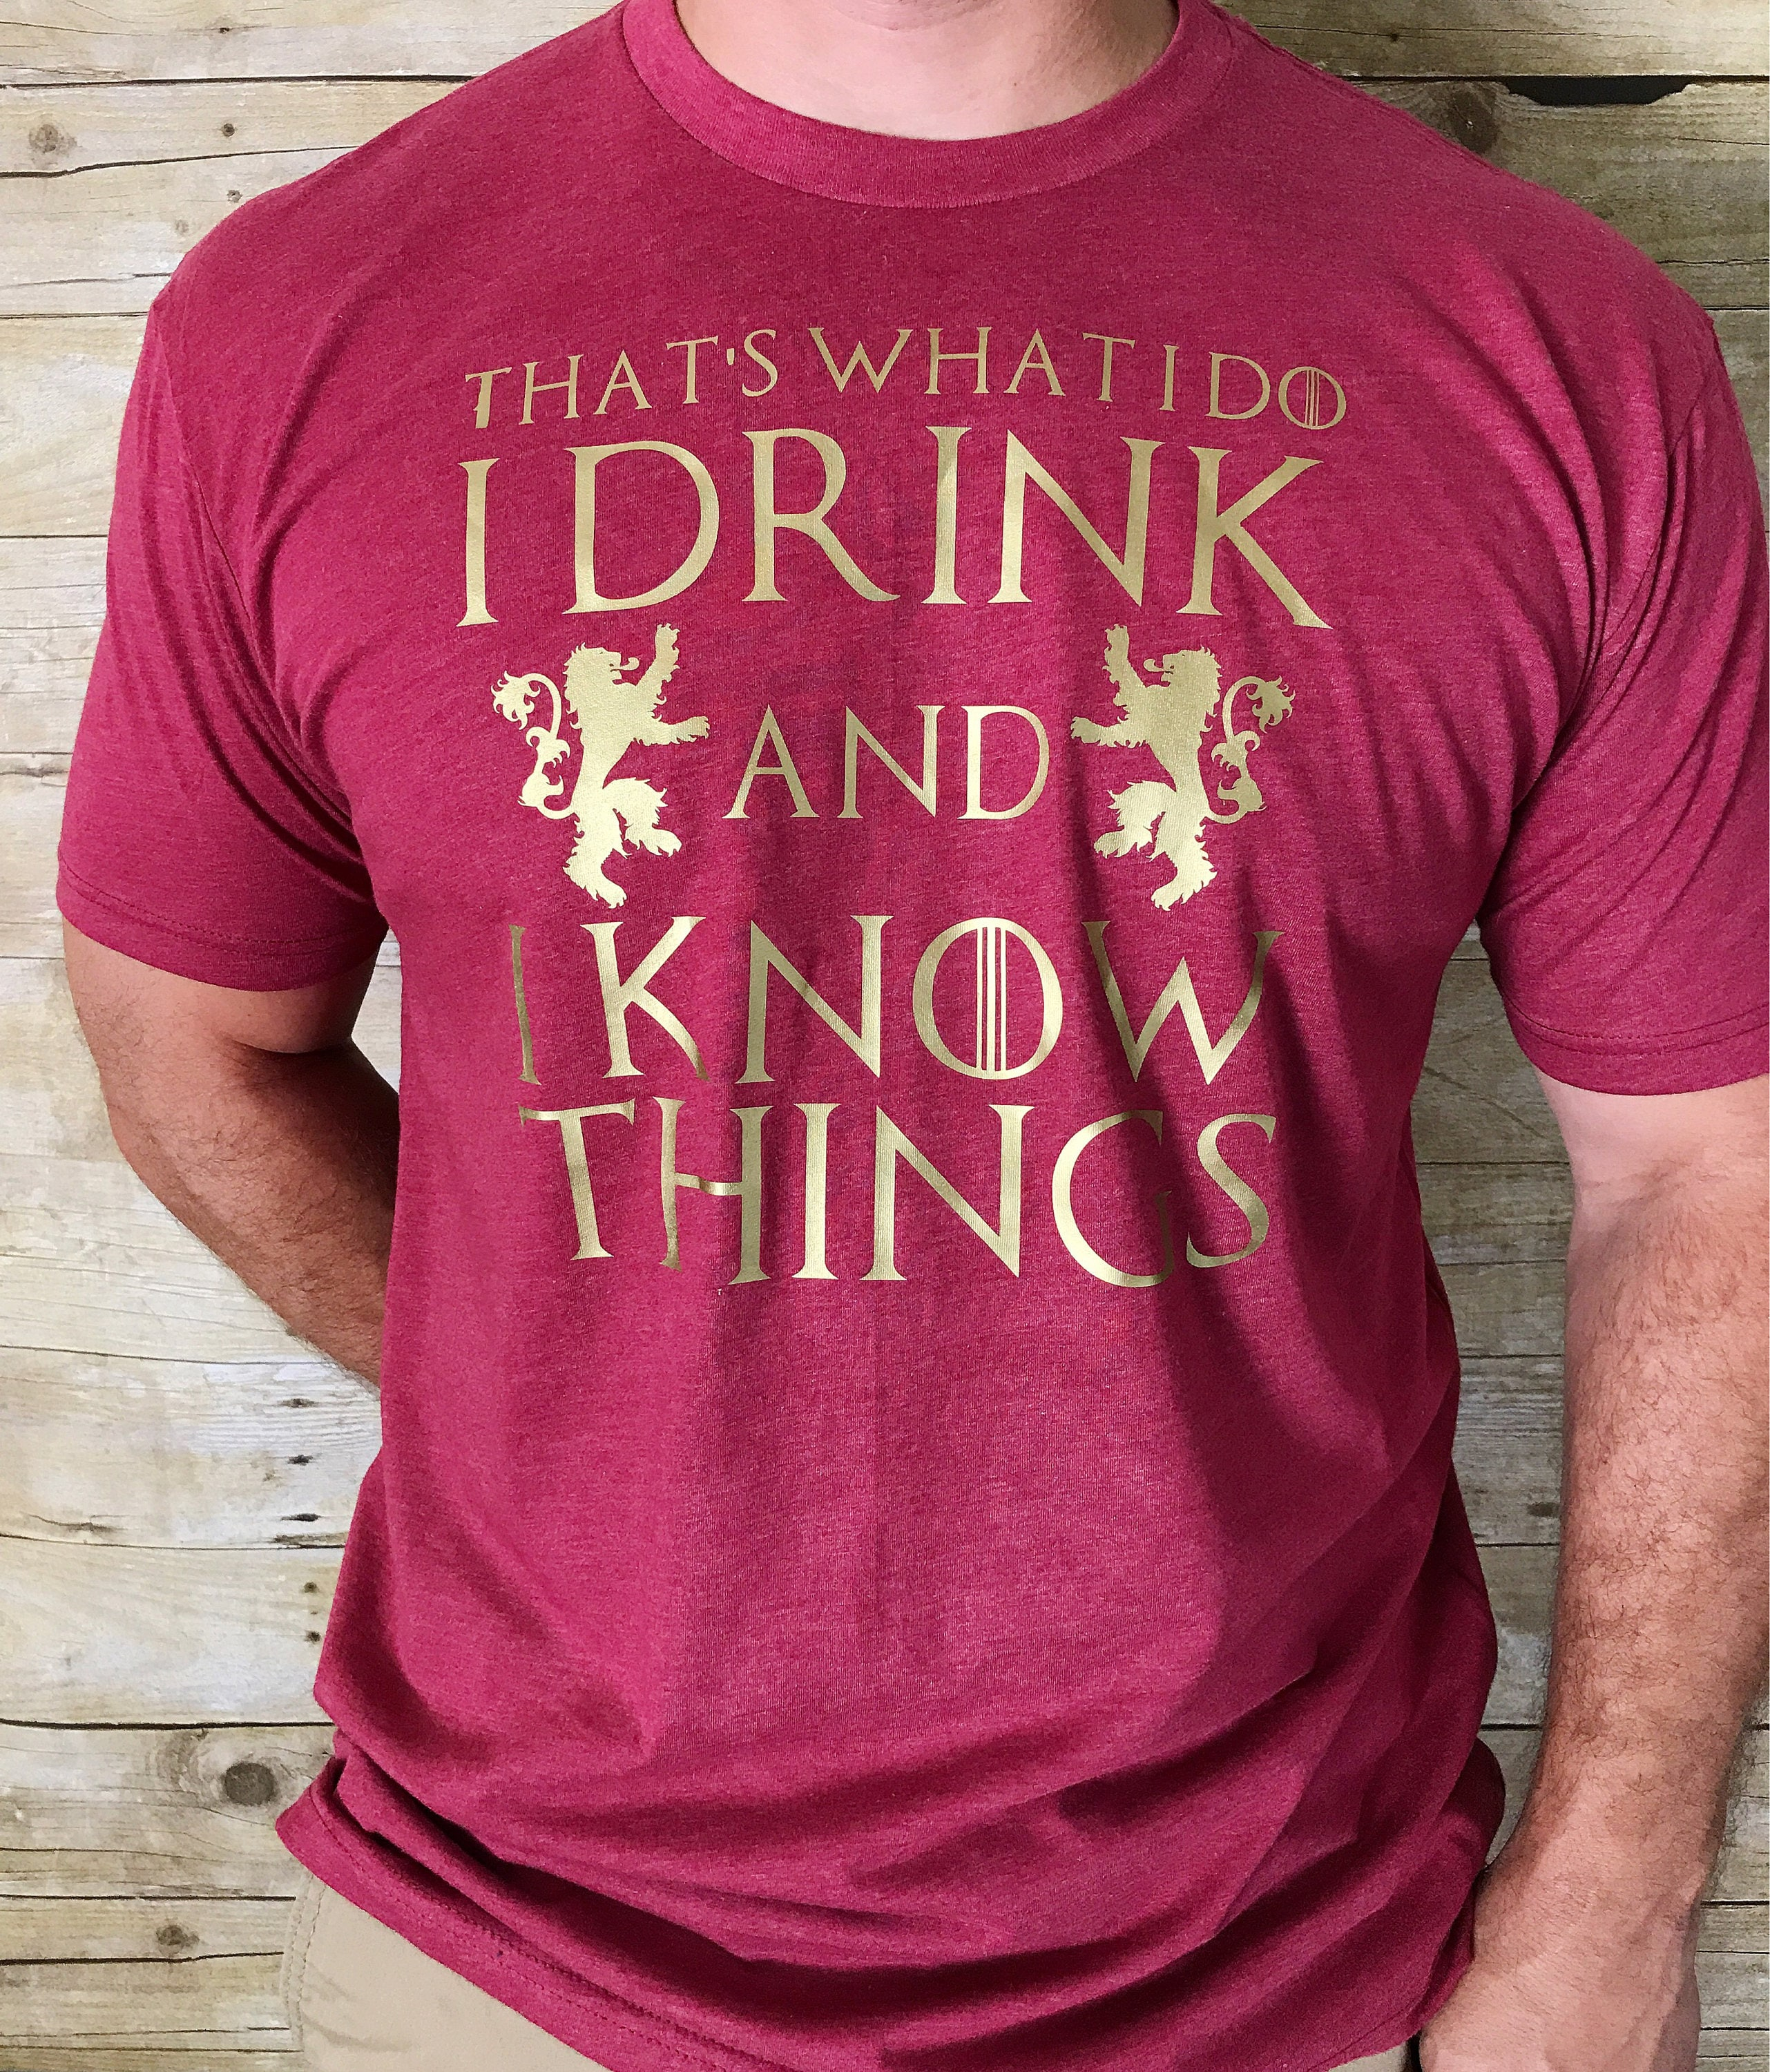 Game of Thrones Shirt House Lannister I Drink and I Know | Etsy